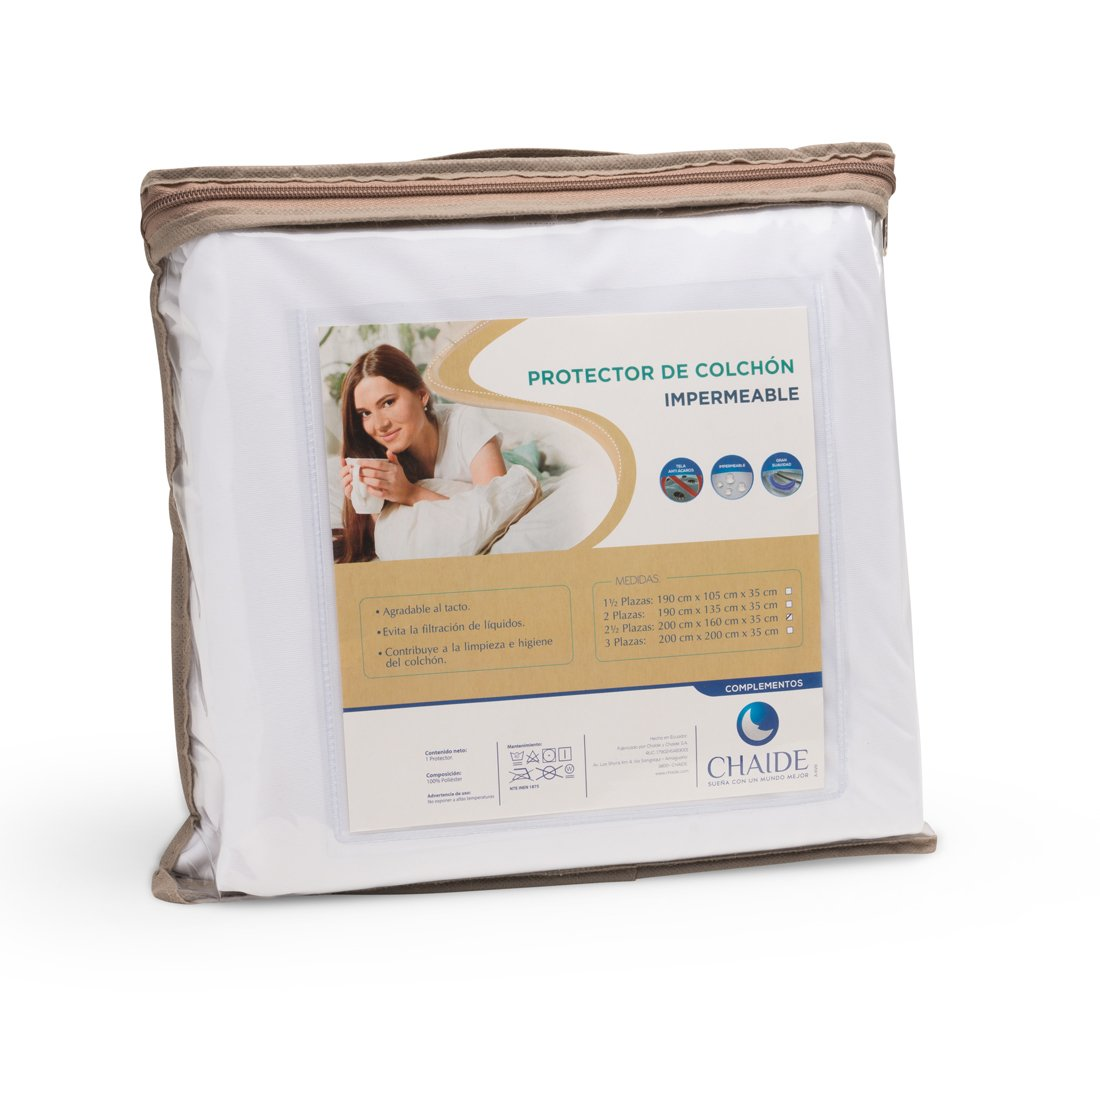 Protector De Colchón CHAIDE Impermeable 1 y Media Plazas Blanco